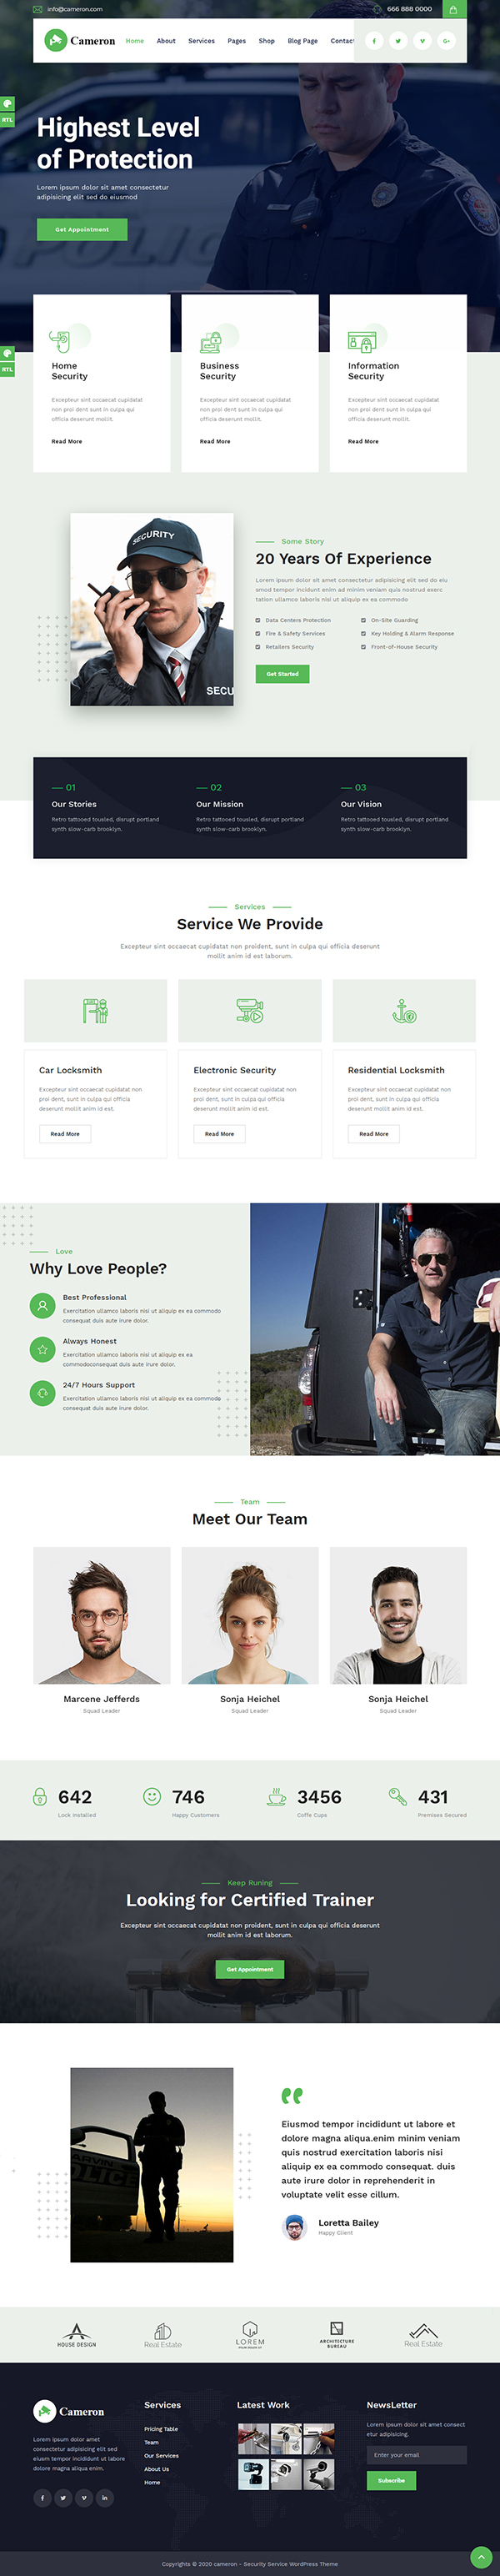 Cameron - Home Automation & Security WordPress Theme + RTL